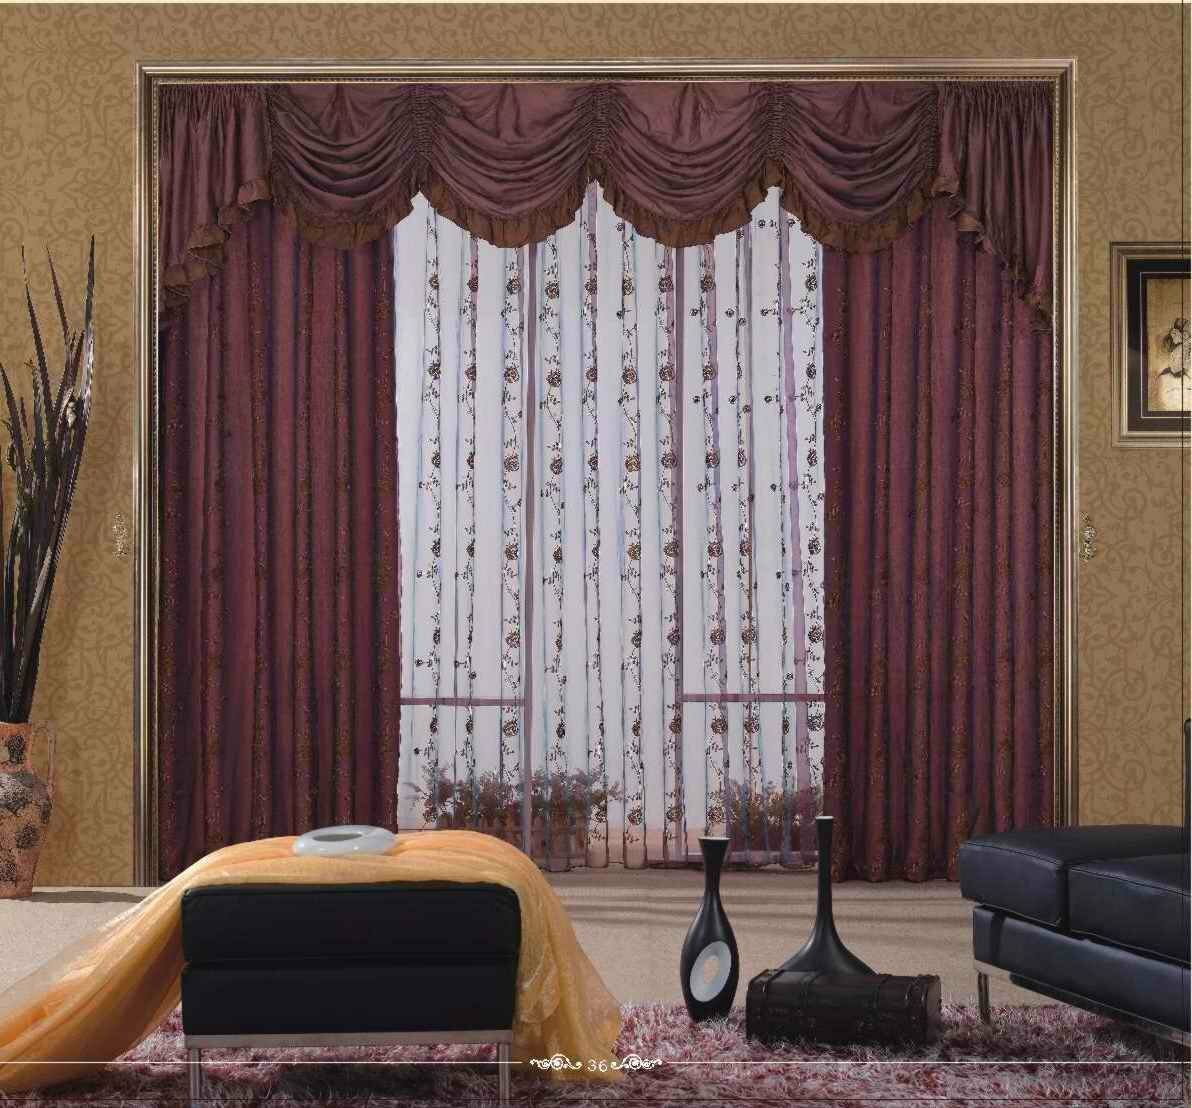 Where To Buy Valances | Living Room Valances | Window Valance Curtains